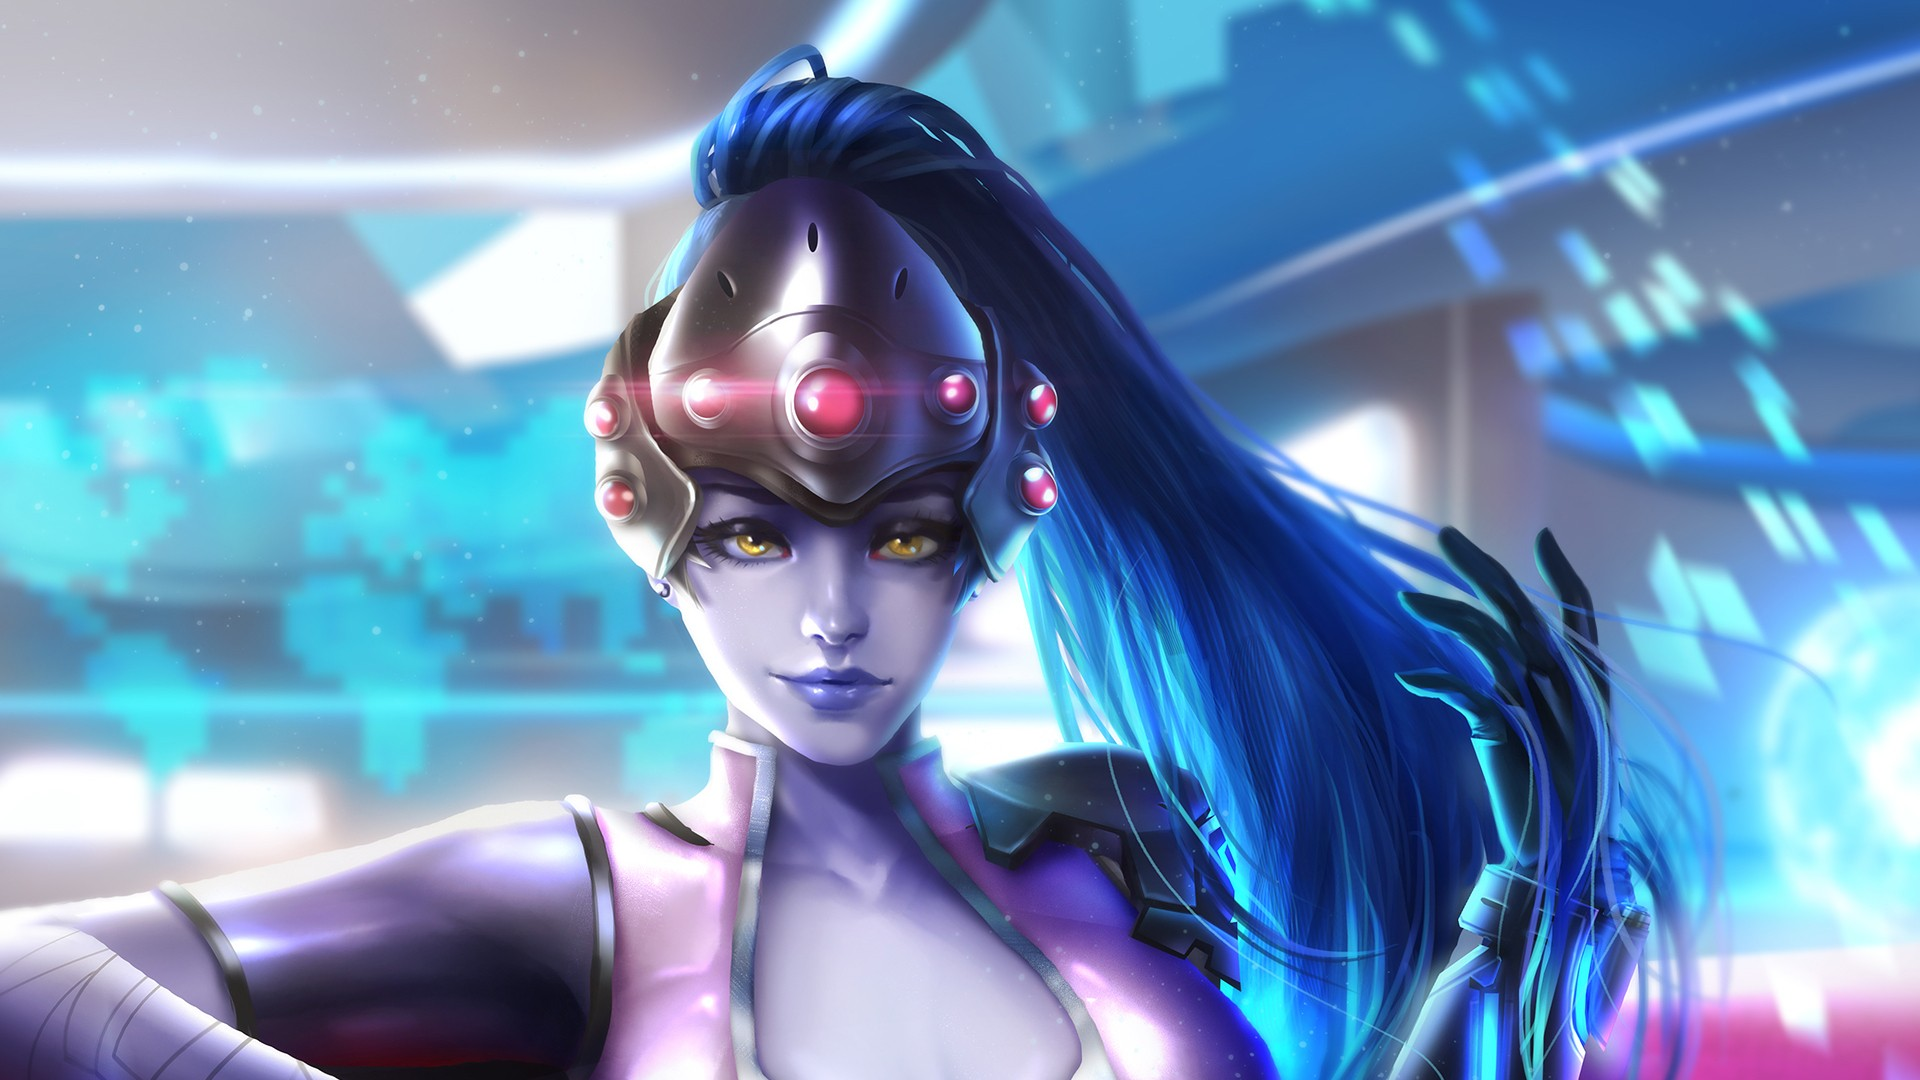 Overwatch Widowmaker Wallpaper ·① Download Free Beautiful